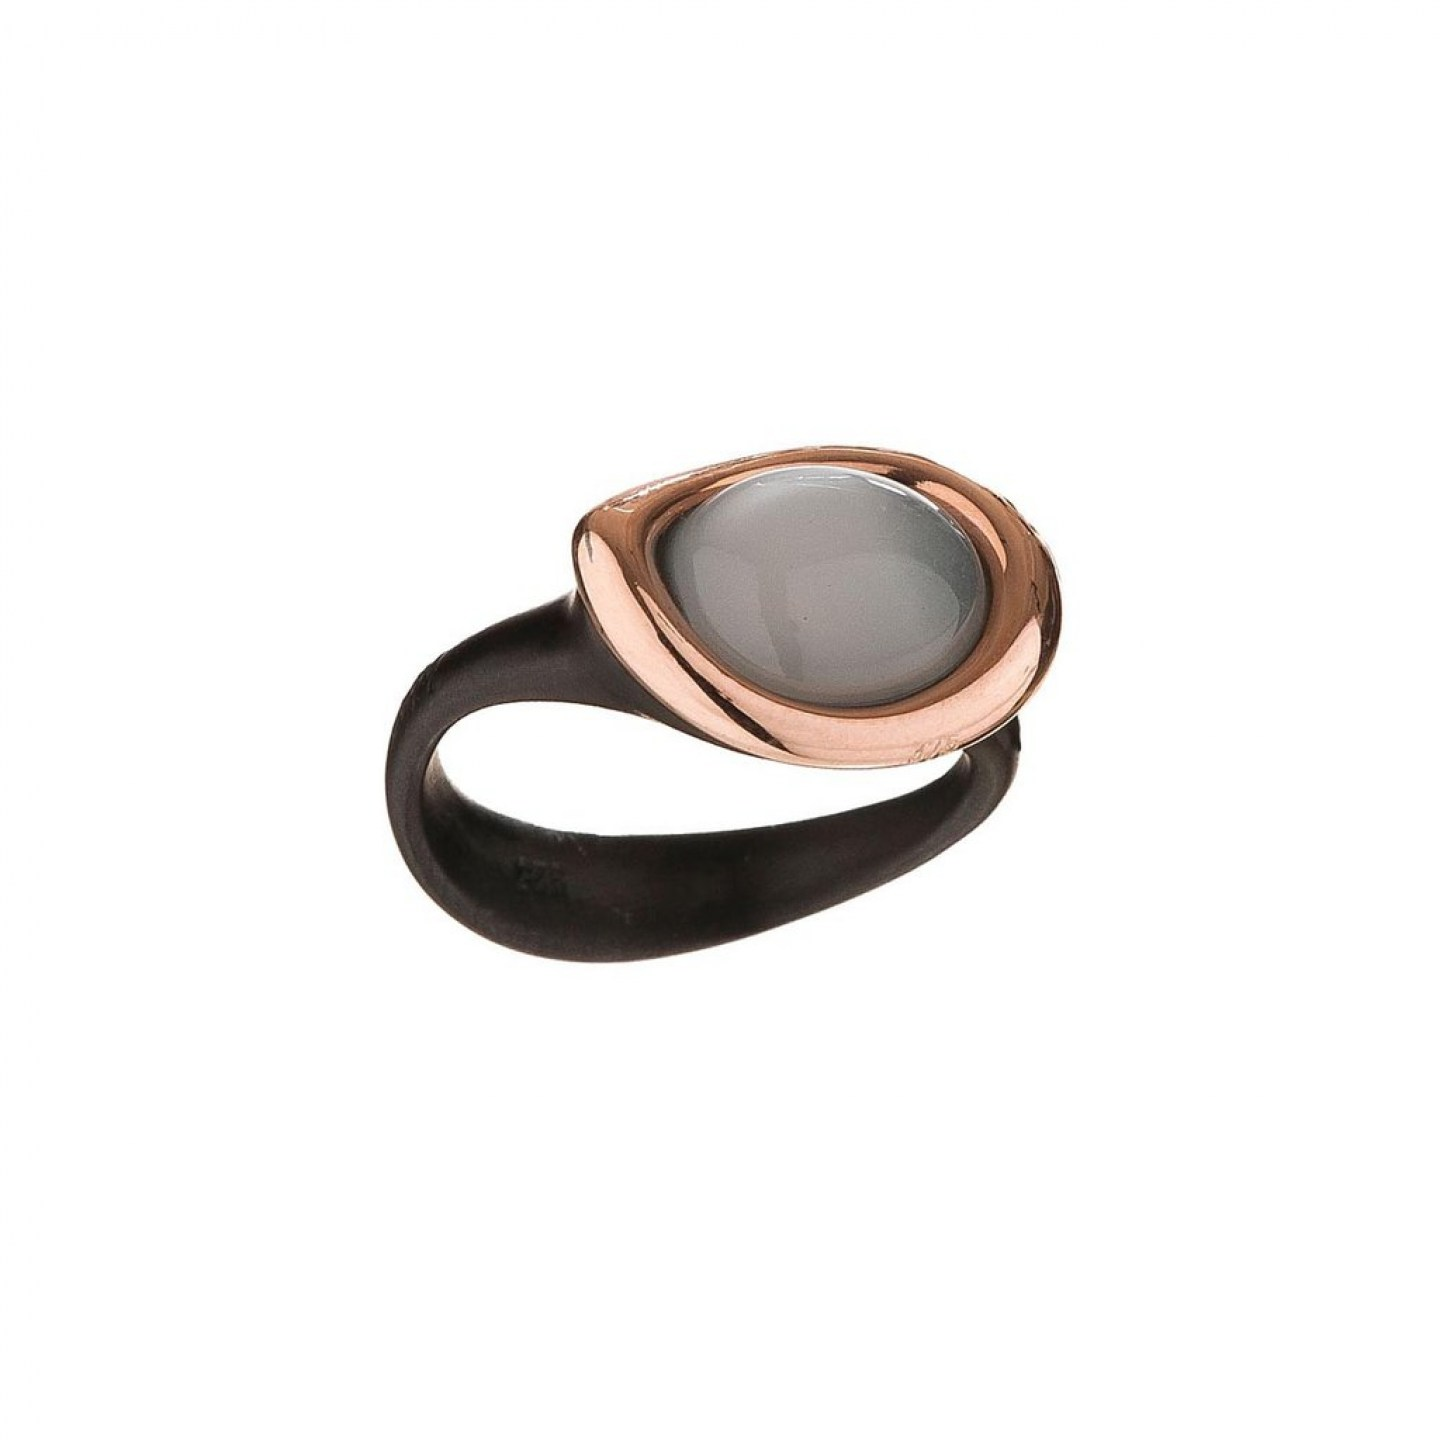 Ring in black plated silver, 9K rose gold and oval moonstone